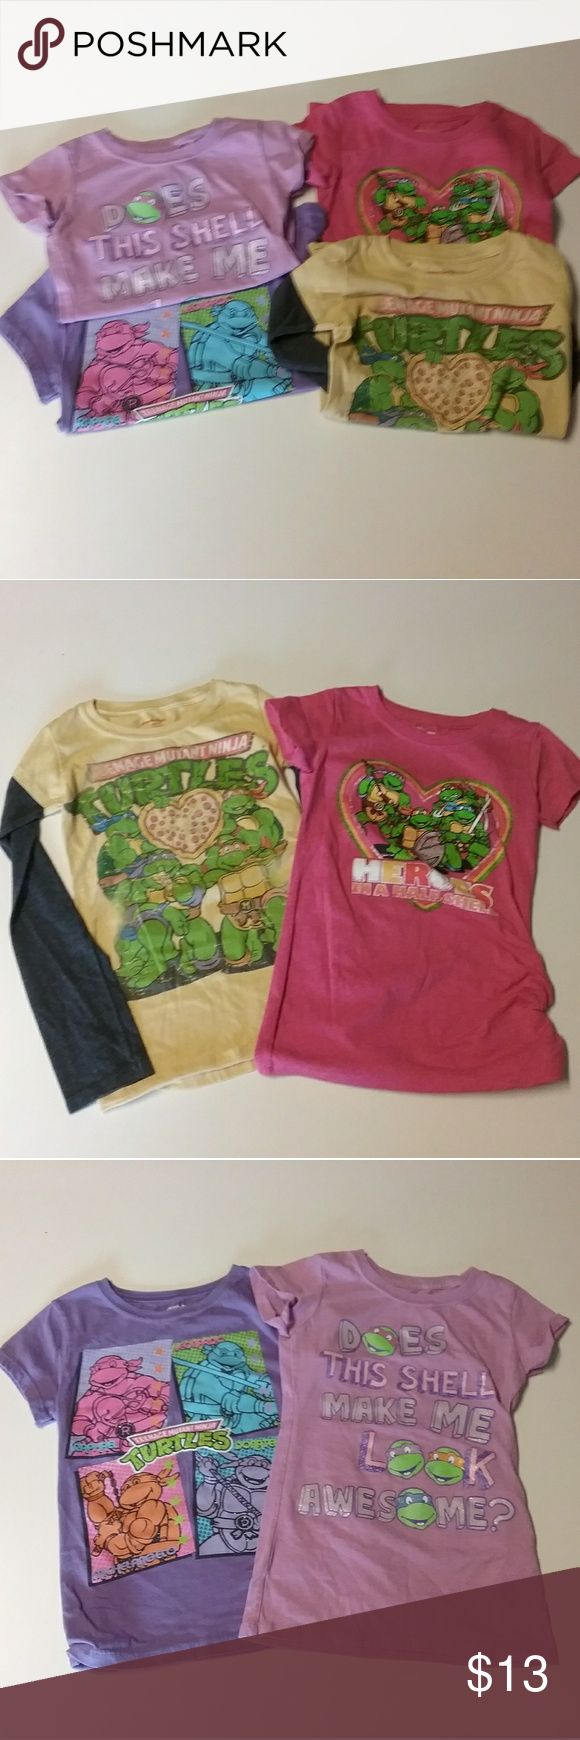 Ninja Turtle Shirt Lot Girls Ninja Turtle shirts... 4 shirts total, 3 are short sleeve, all in great shape, sz M (8)). Bundle and save! Nickelodeon Shirts & Tops